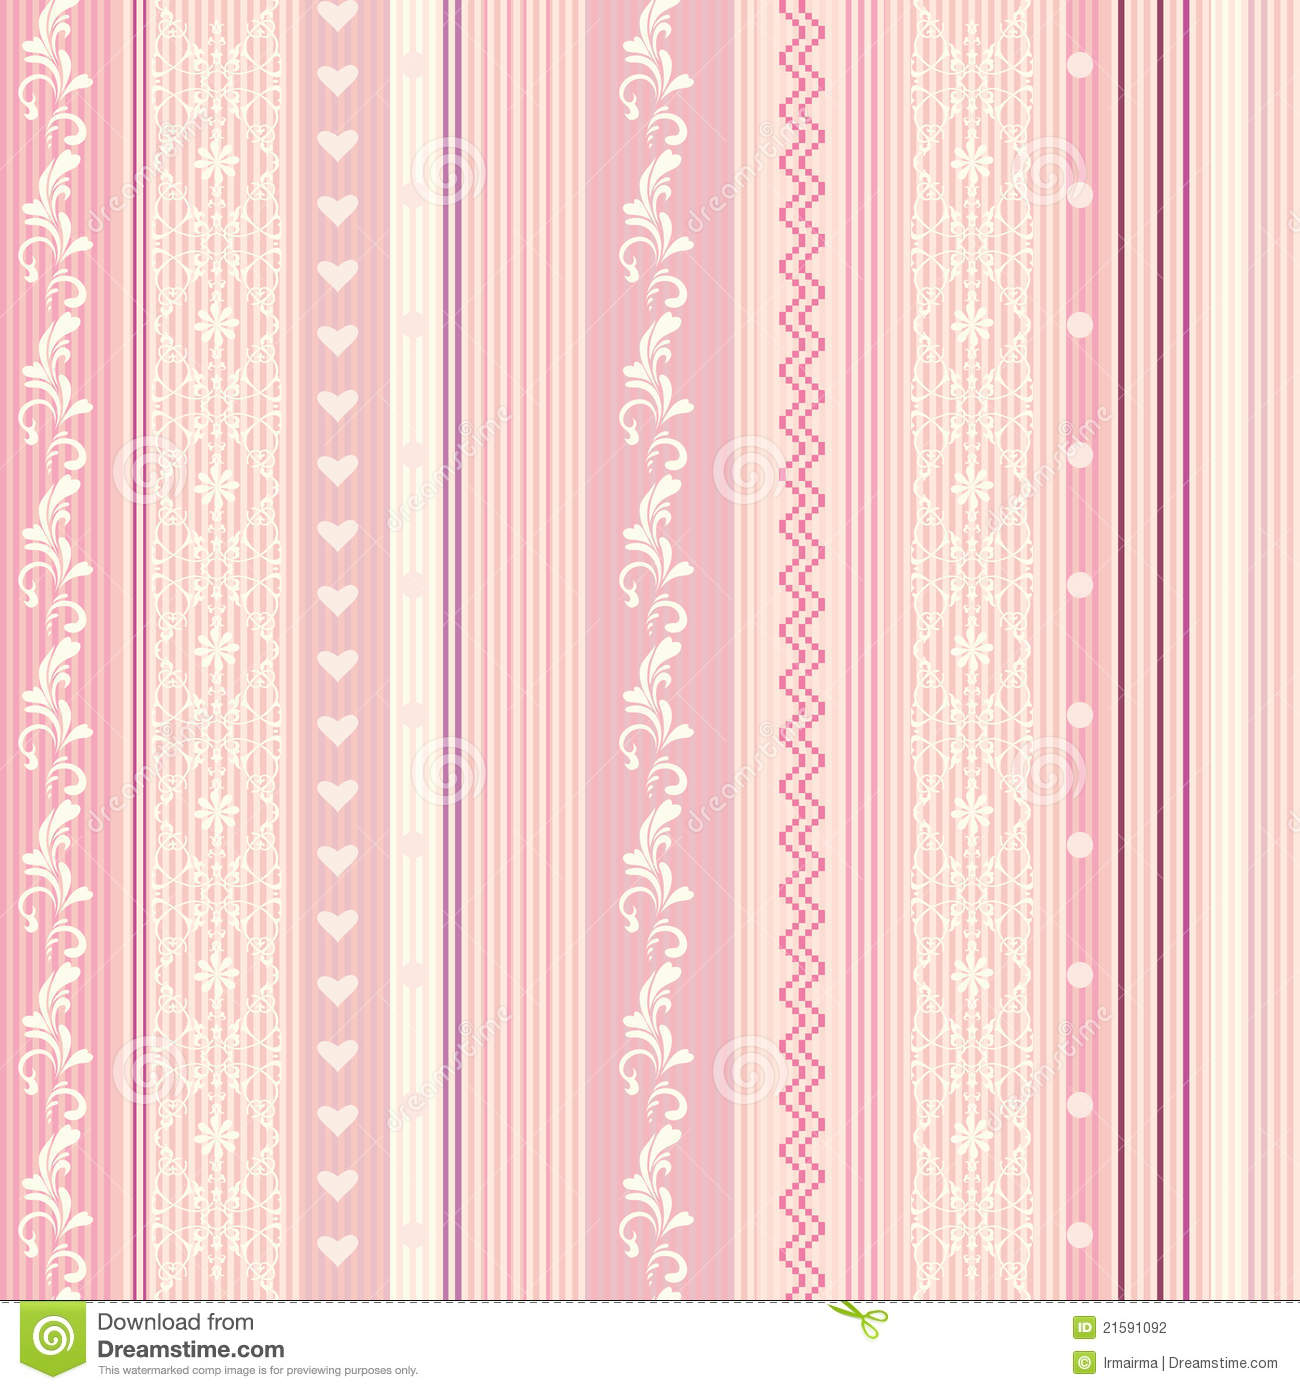 Papel de parede listrado cor de rosa de ornamenral for Papel de pared decorativo